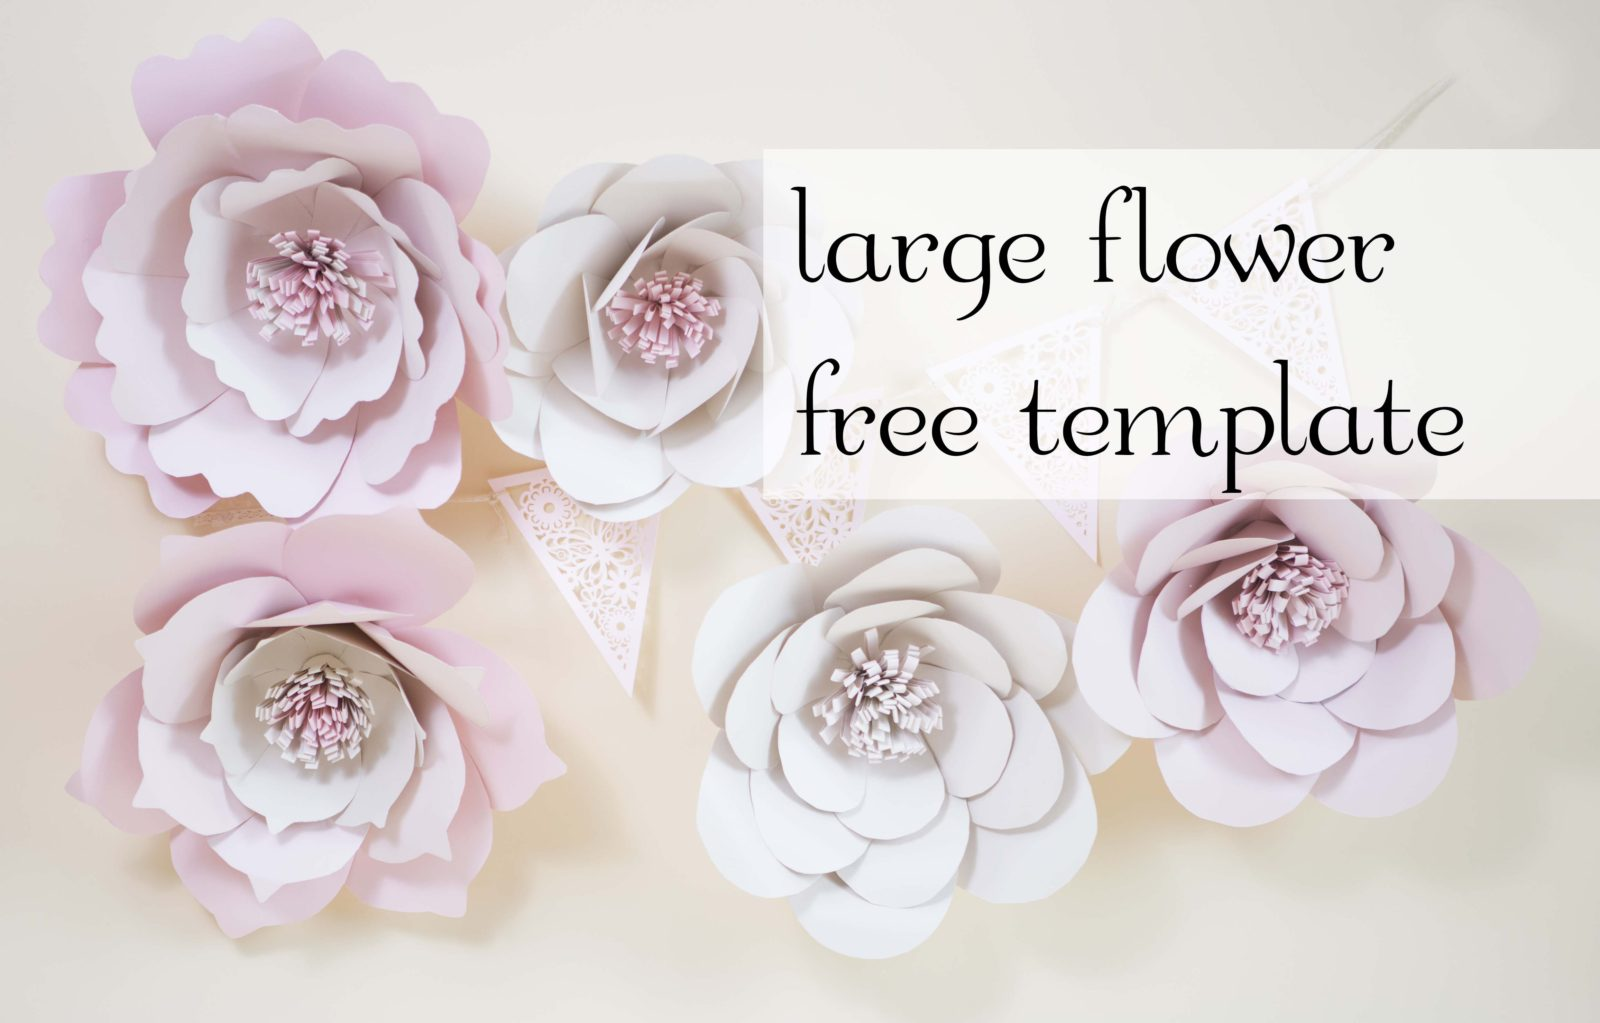 Giant Paper Flowers Free Template